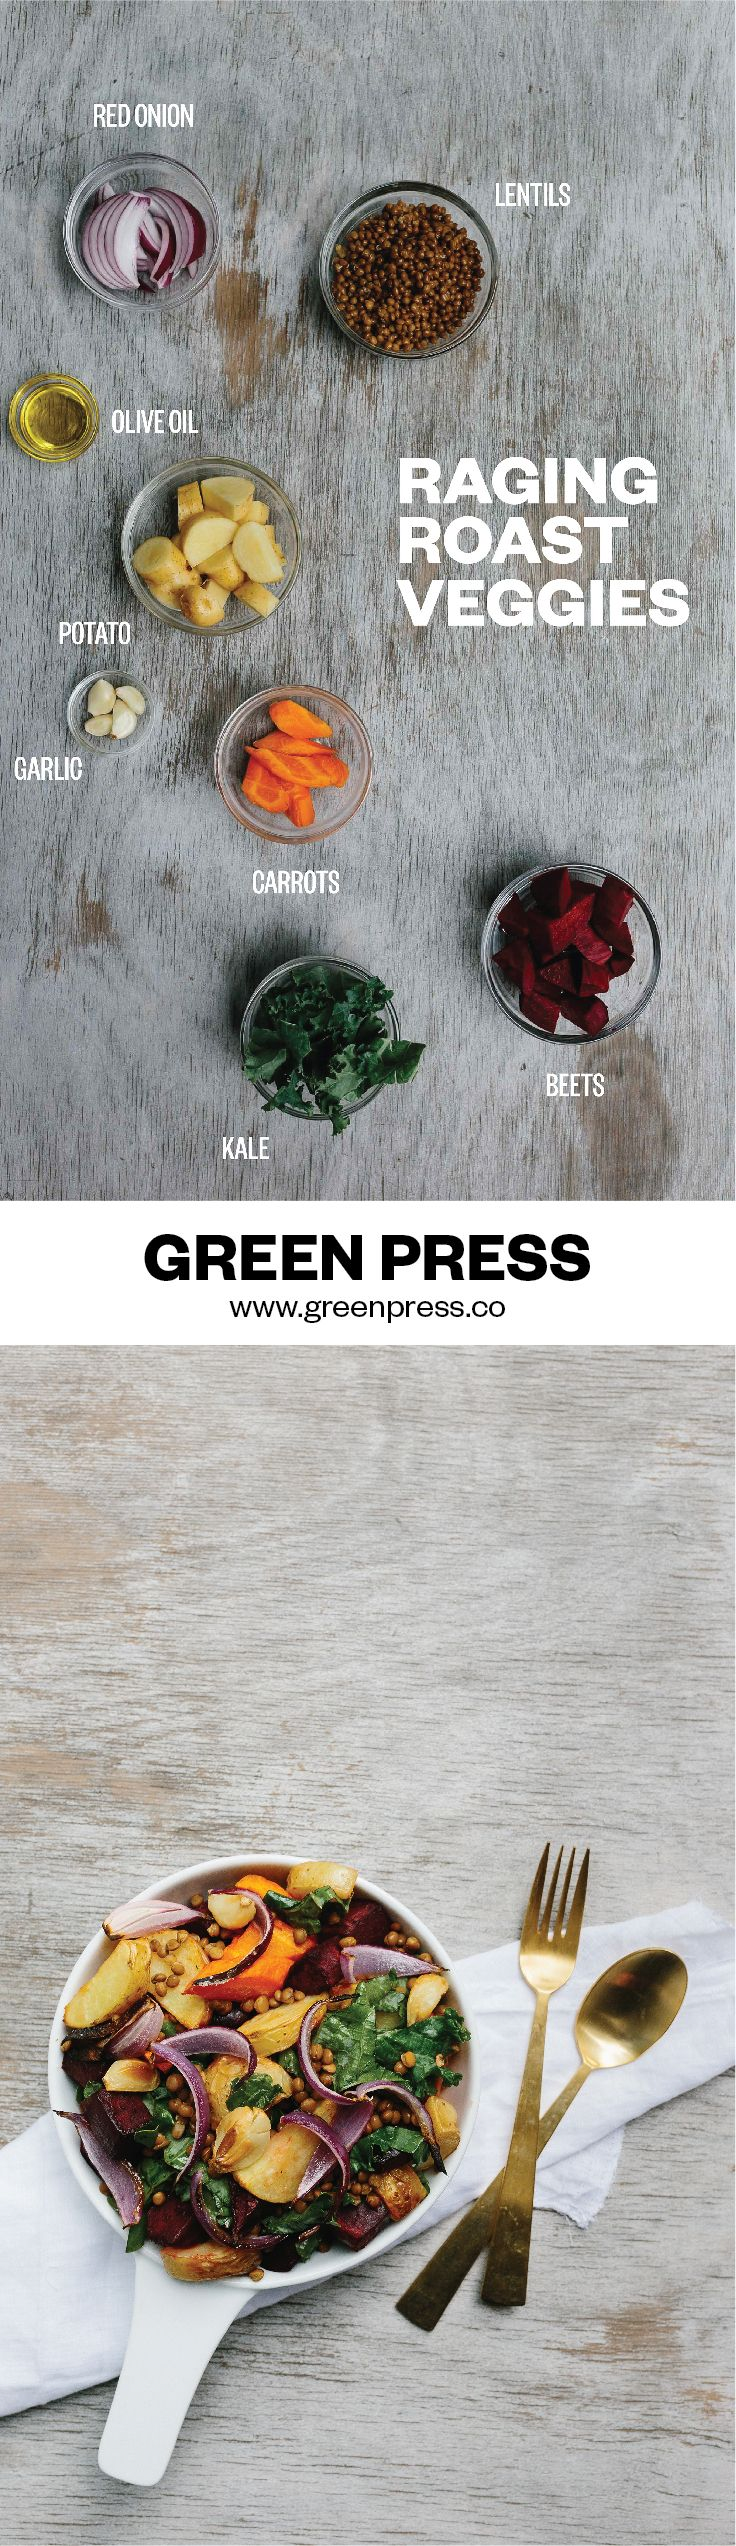 Learn how to make healthy and delicious vegetarian meals! Start by learning how to roast your veggies like a chef. Roast Veg and lentils, a heart warmer in winter and a life saver in summer, make a big batch and tuck in 3/4 times a week for dinner and lunch. | http://greenpress.co